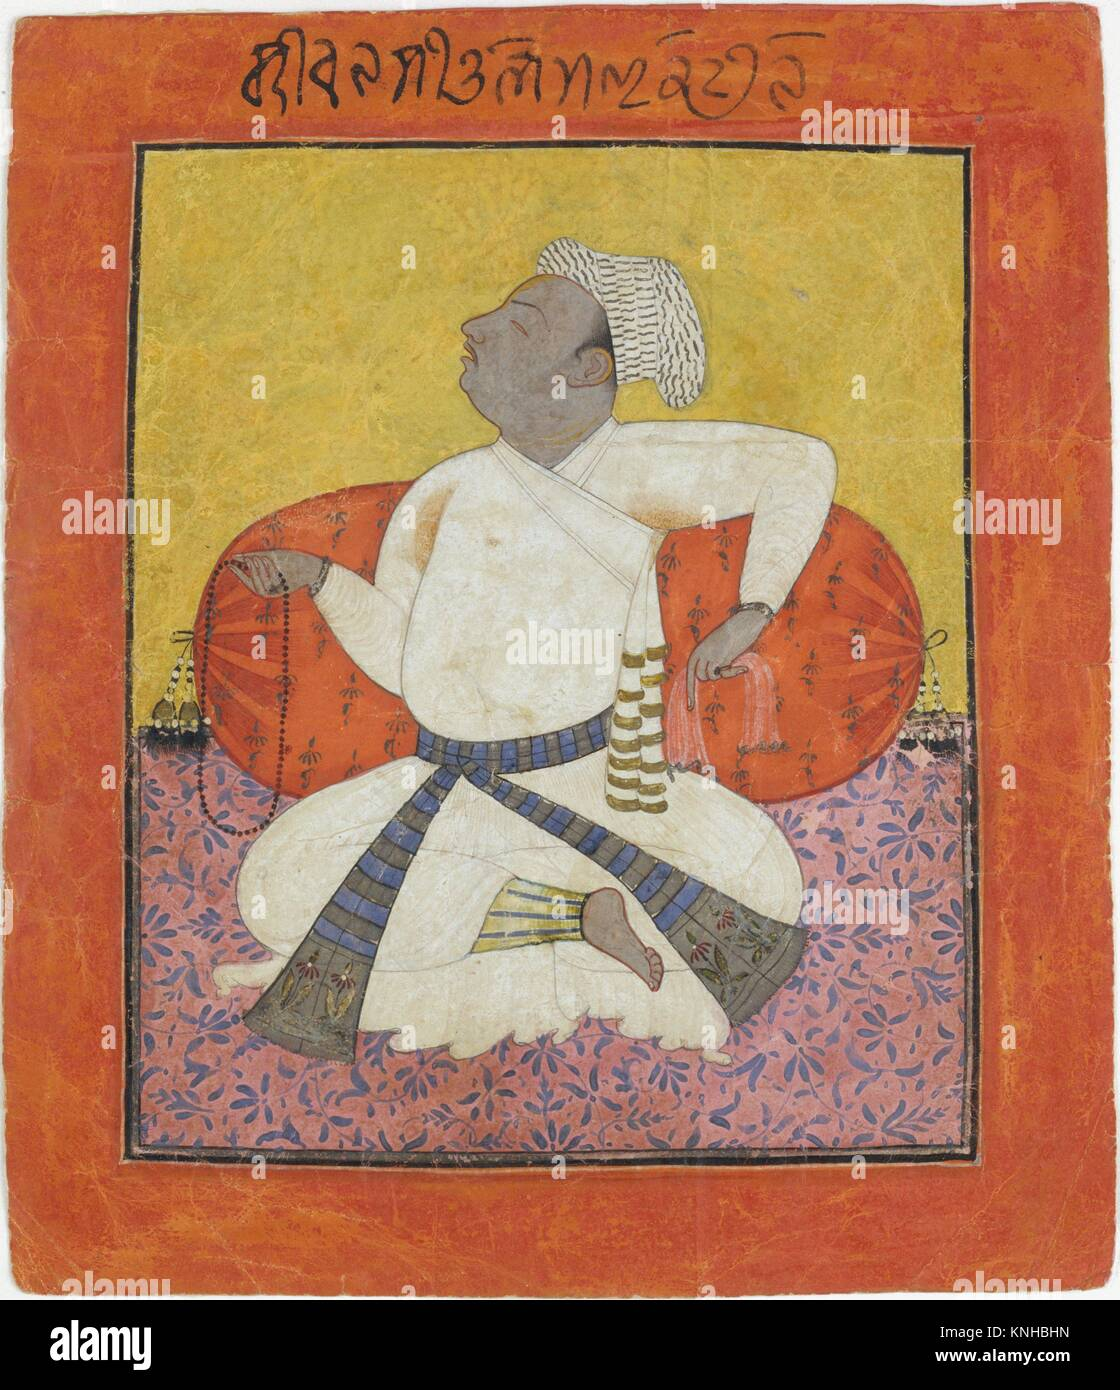 Maharaja Sital Dev in Devotion. Date: ca. 1690; Culture: India (Punjab Hills, Basohli); Medium: Ink, opaque watercolor, - Stock Image